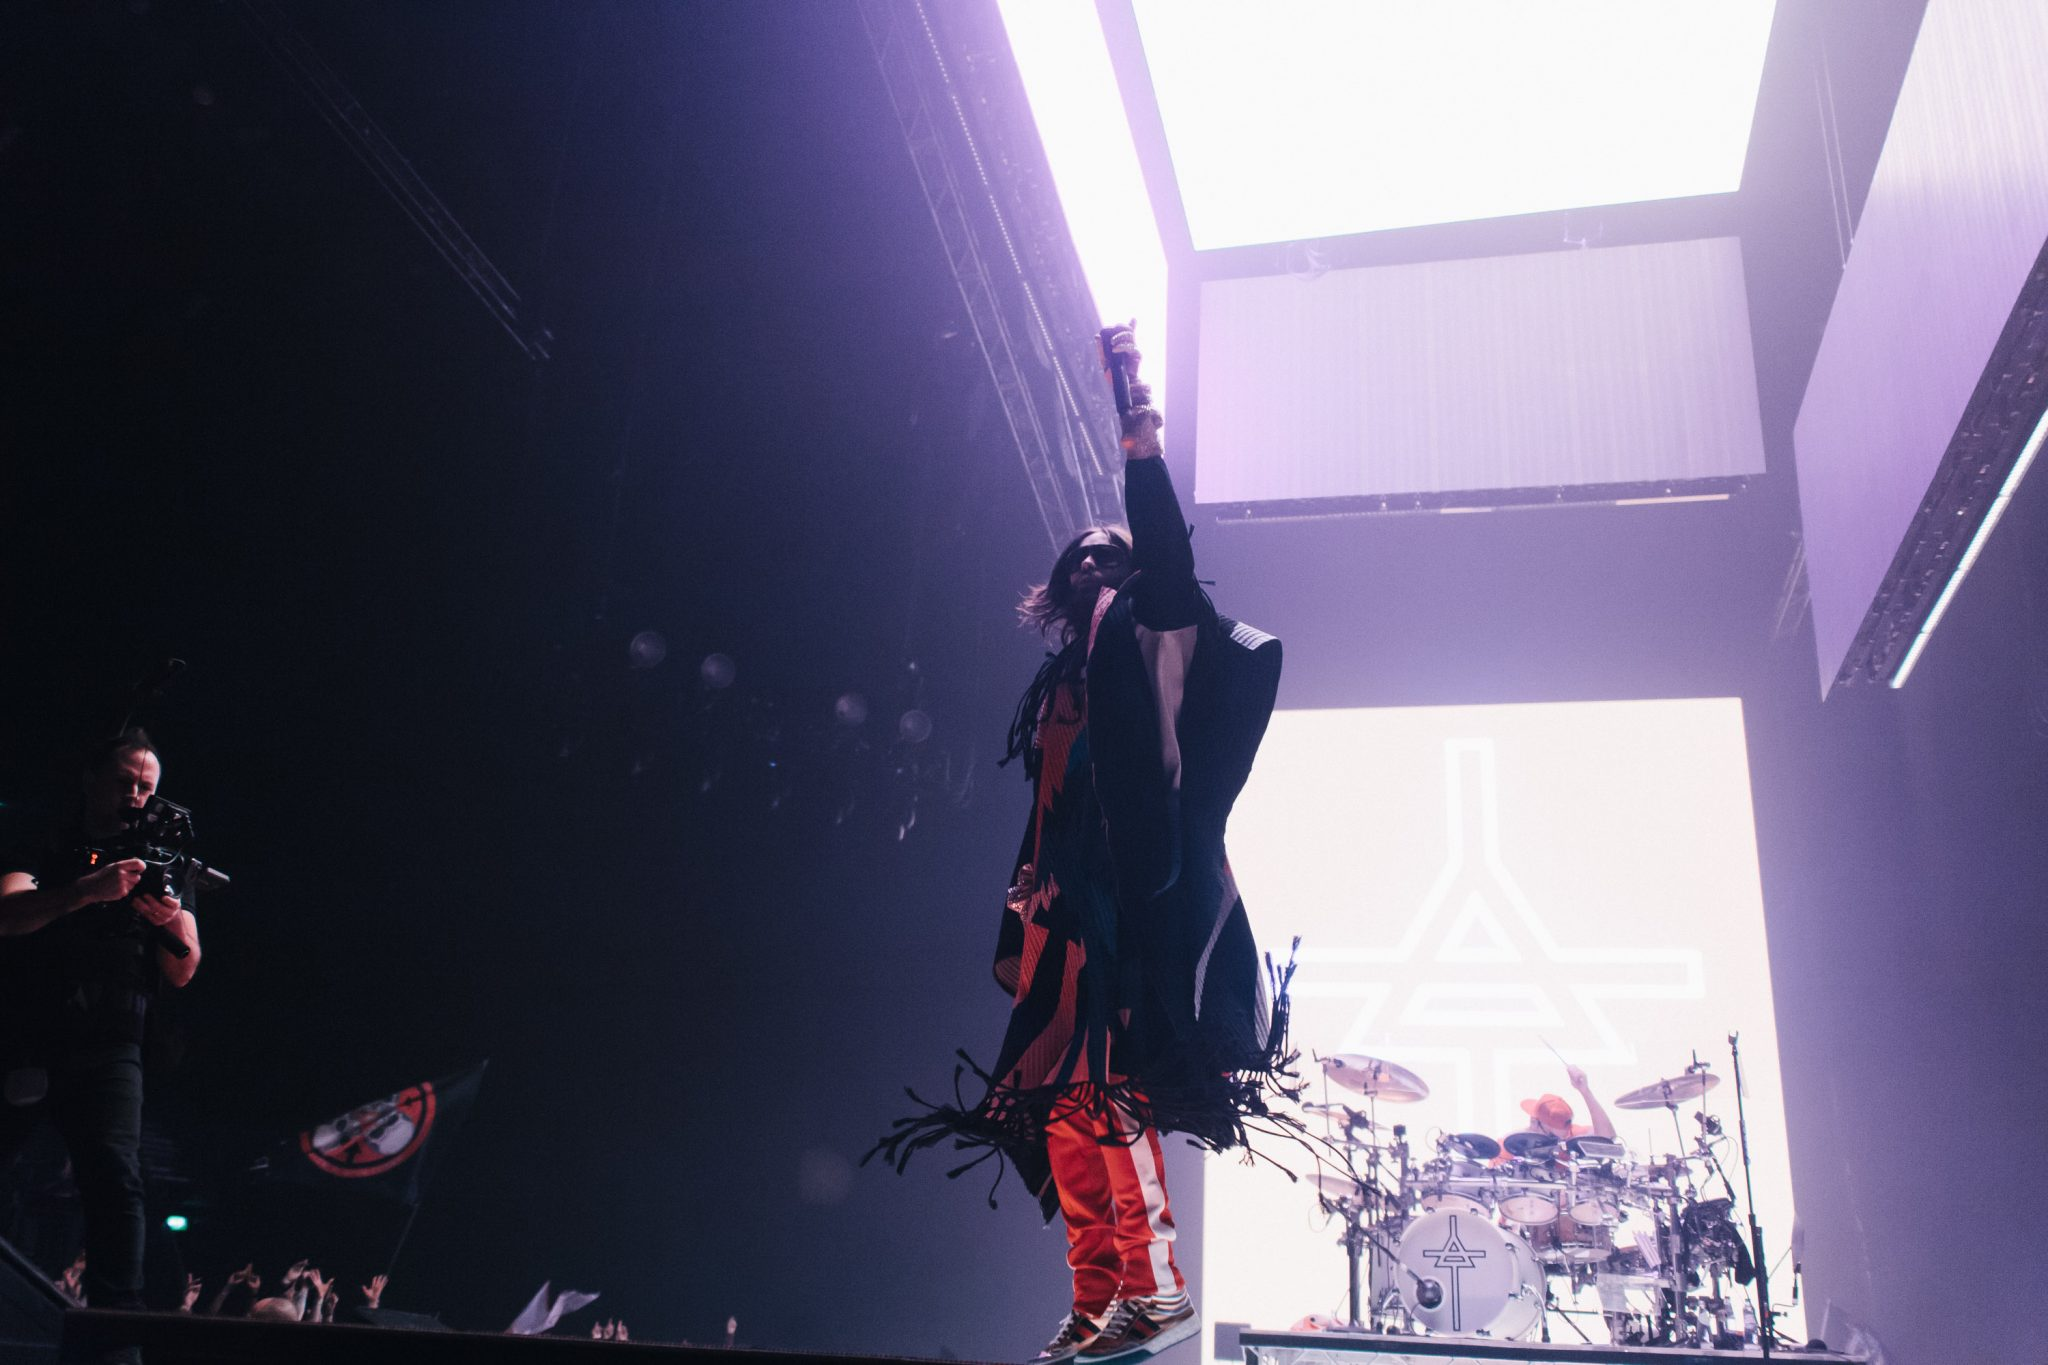 manchester london music photographer 30 seconds to mars monlolith tour